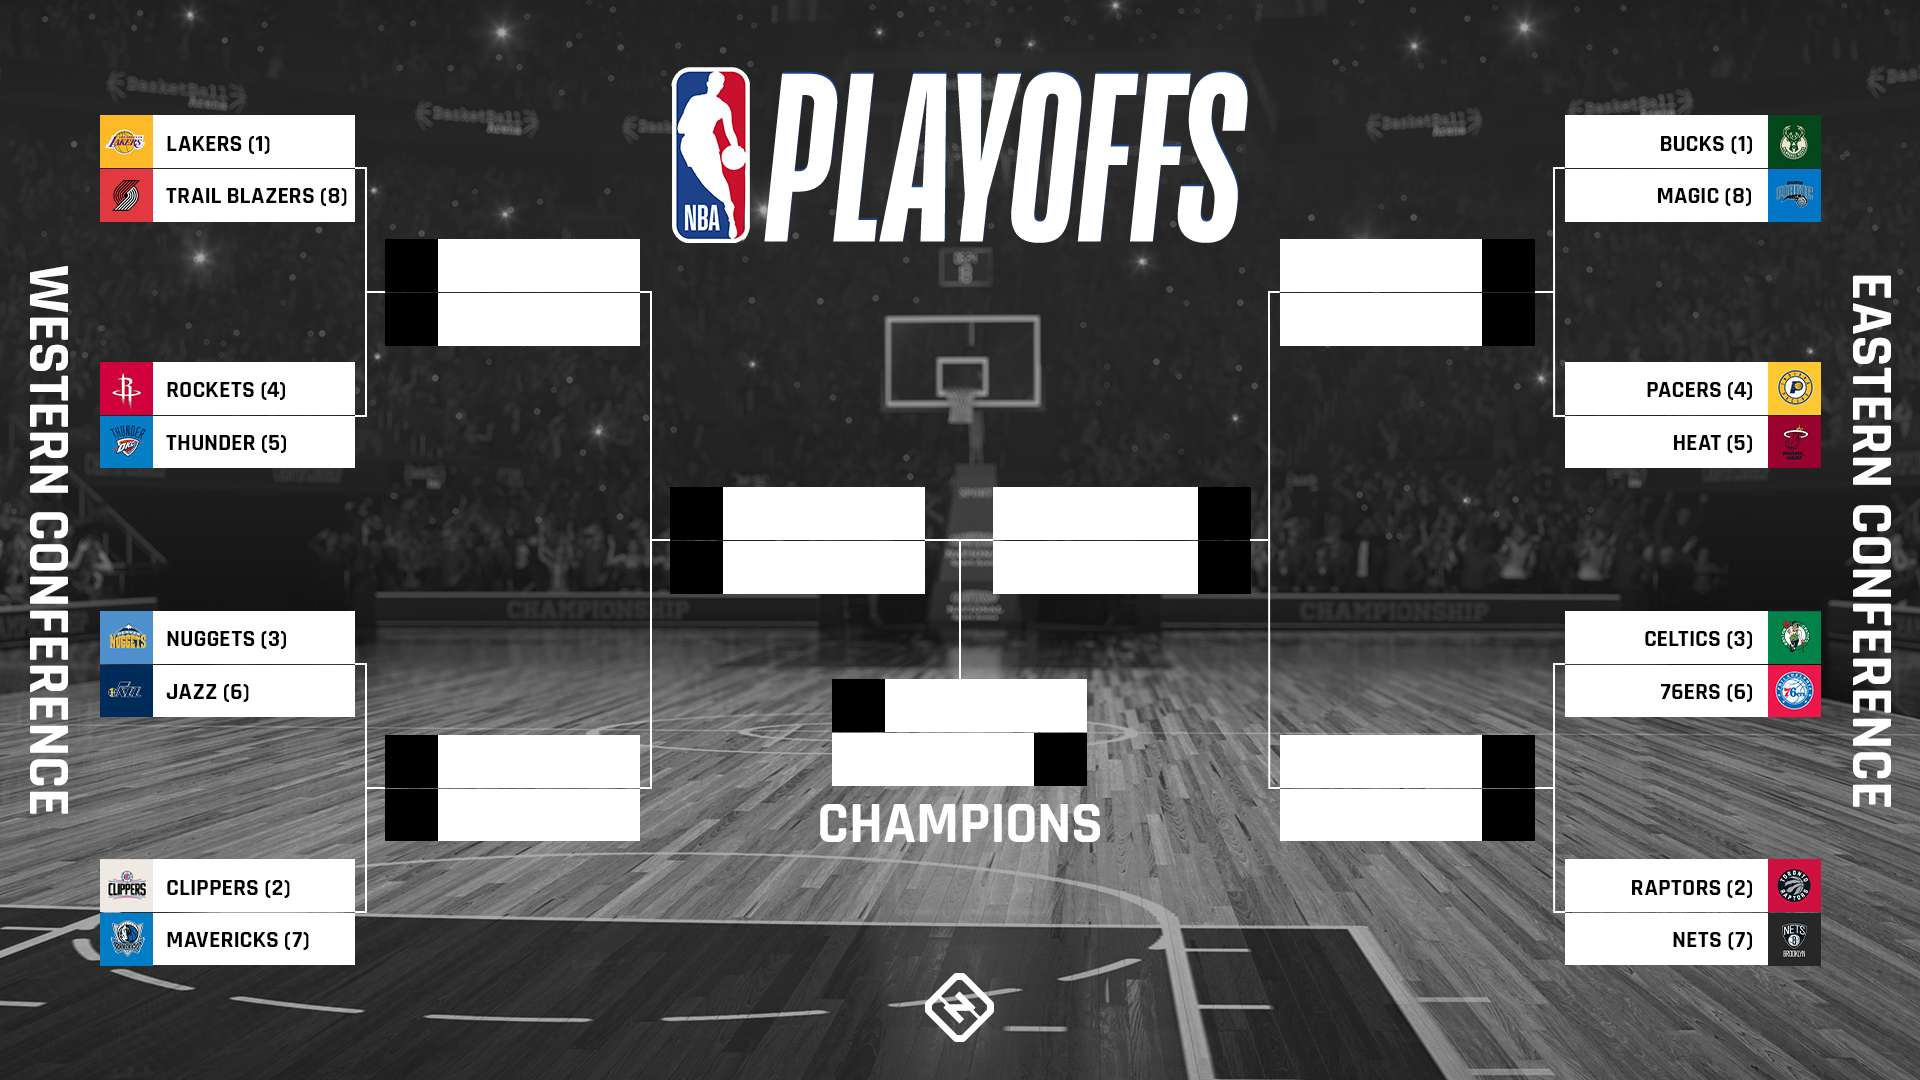 Nba Playoff Bracket 2020 Updated Standings Seeds Results From Each Round Sporting News